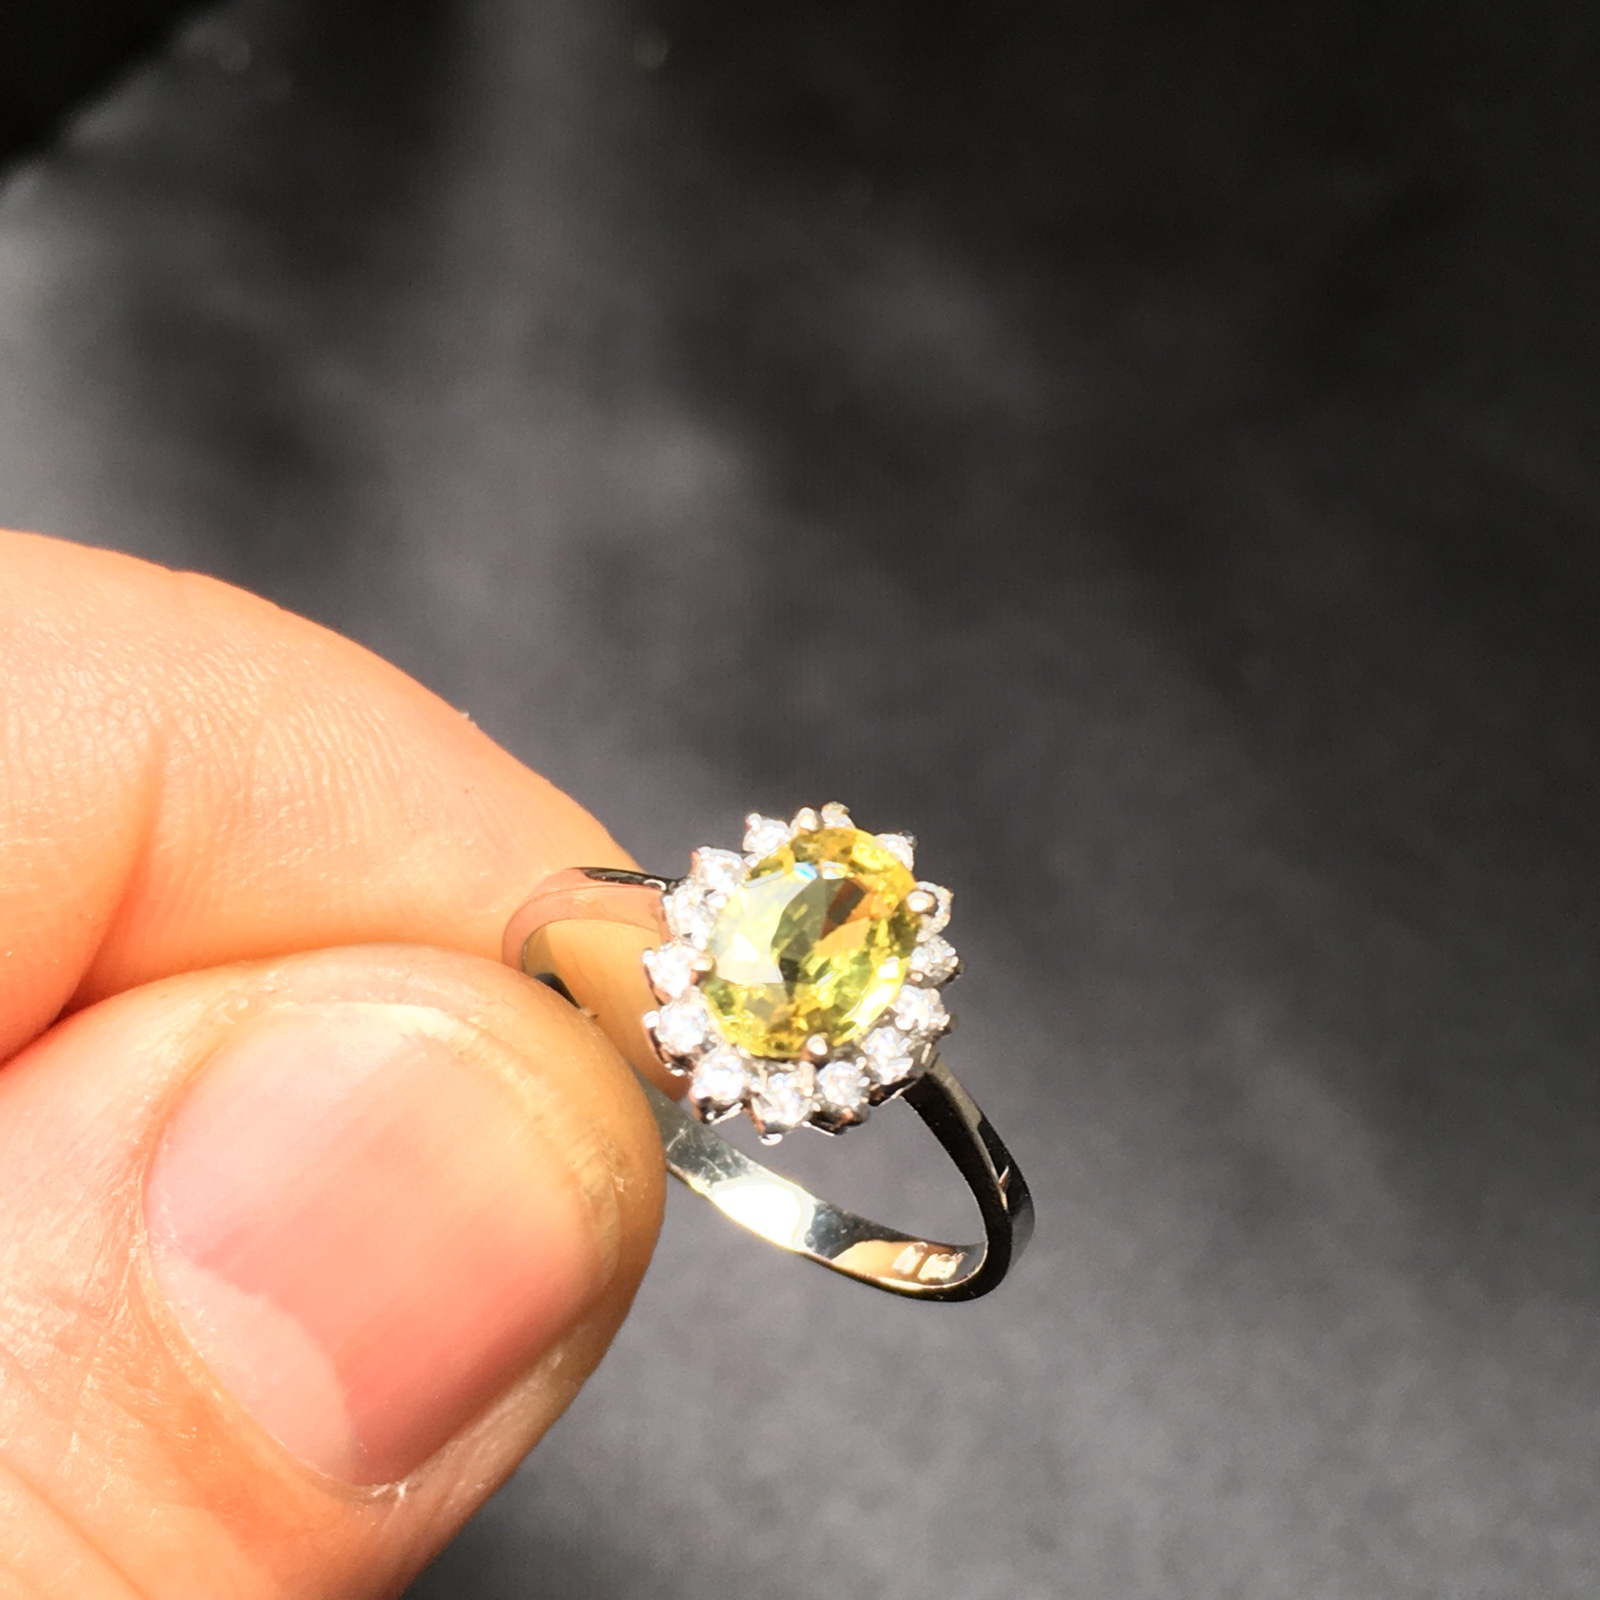 Changle mining area pure natural unburned yellow quality sapphire bare stone inlaid 18K platinum ring special package